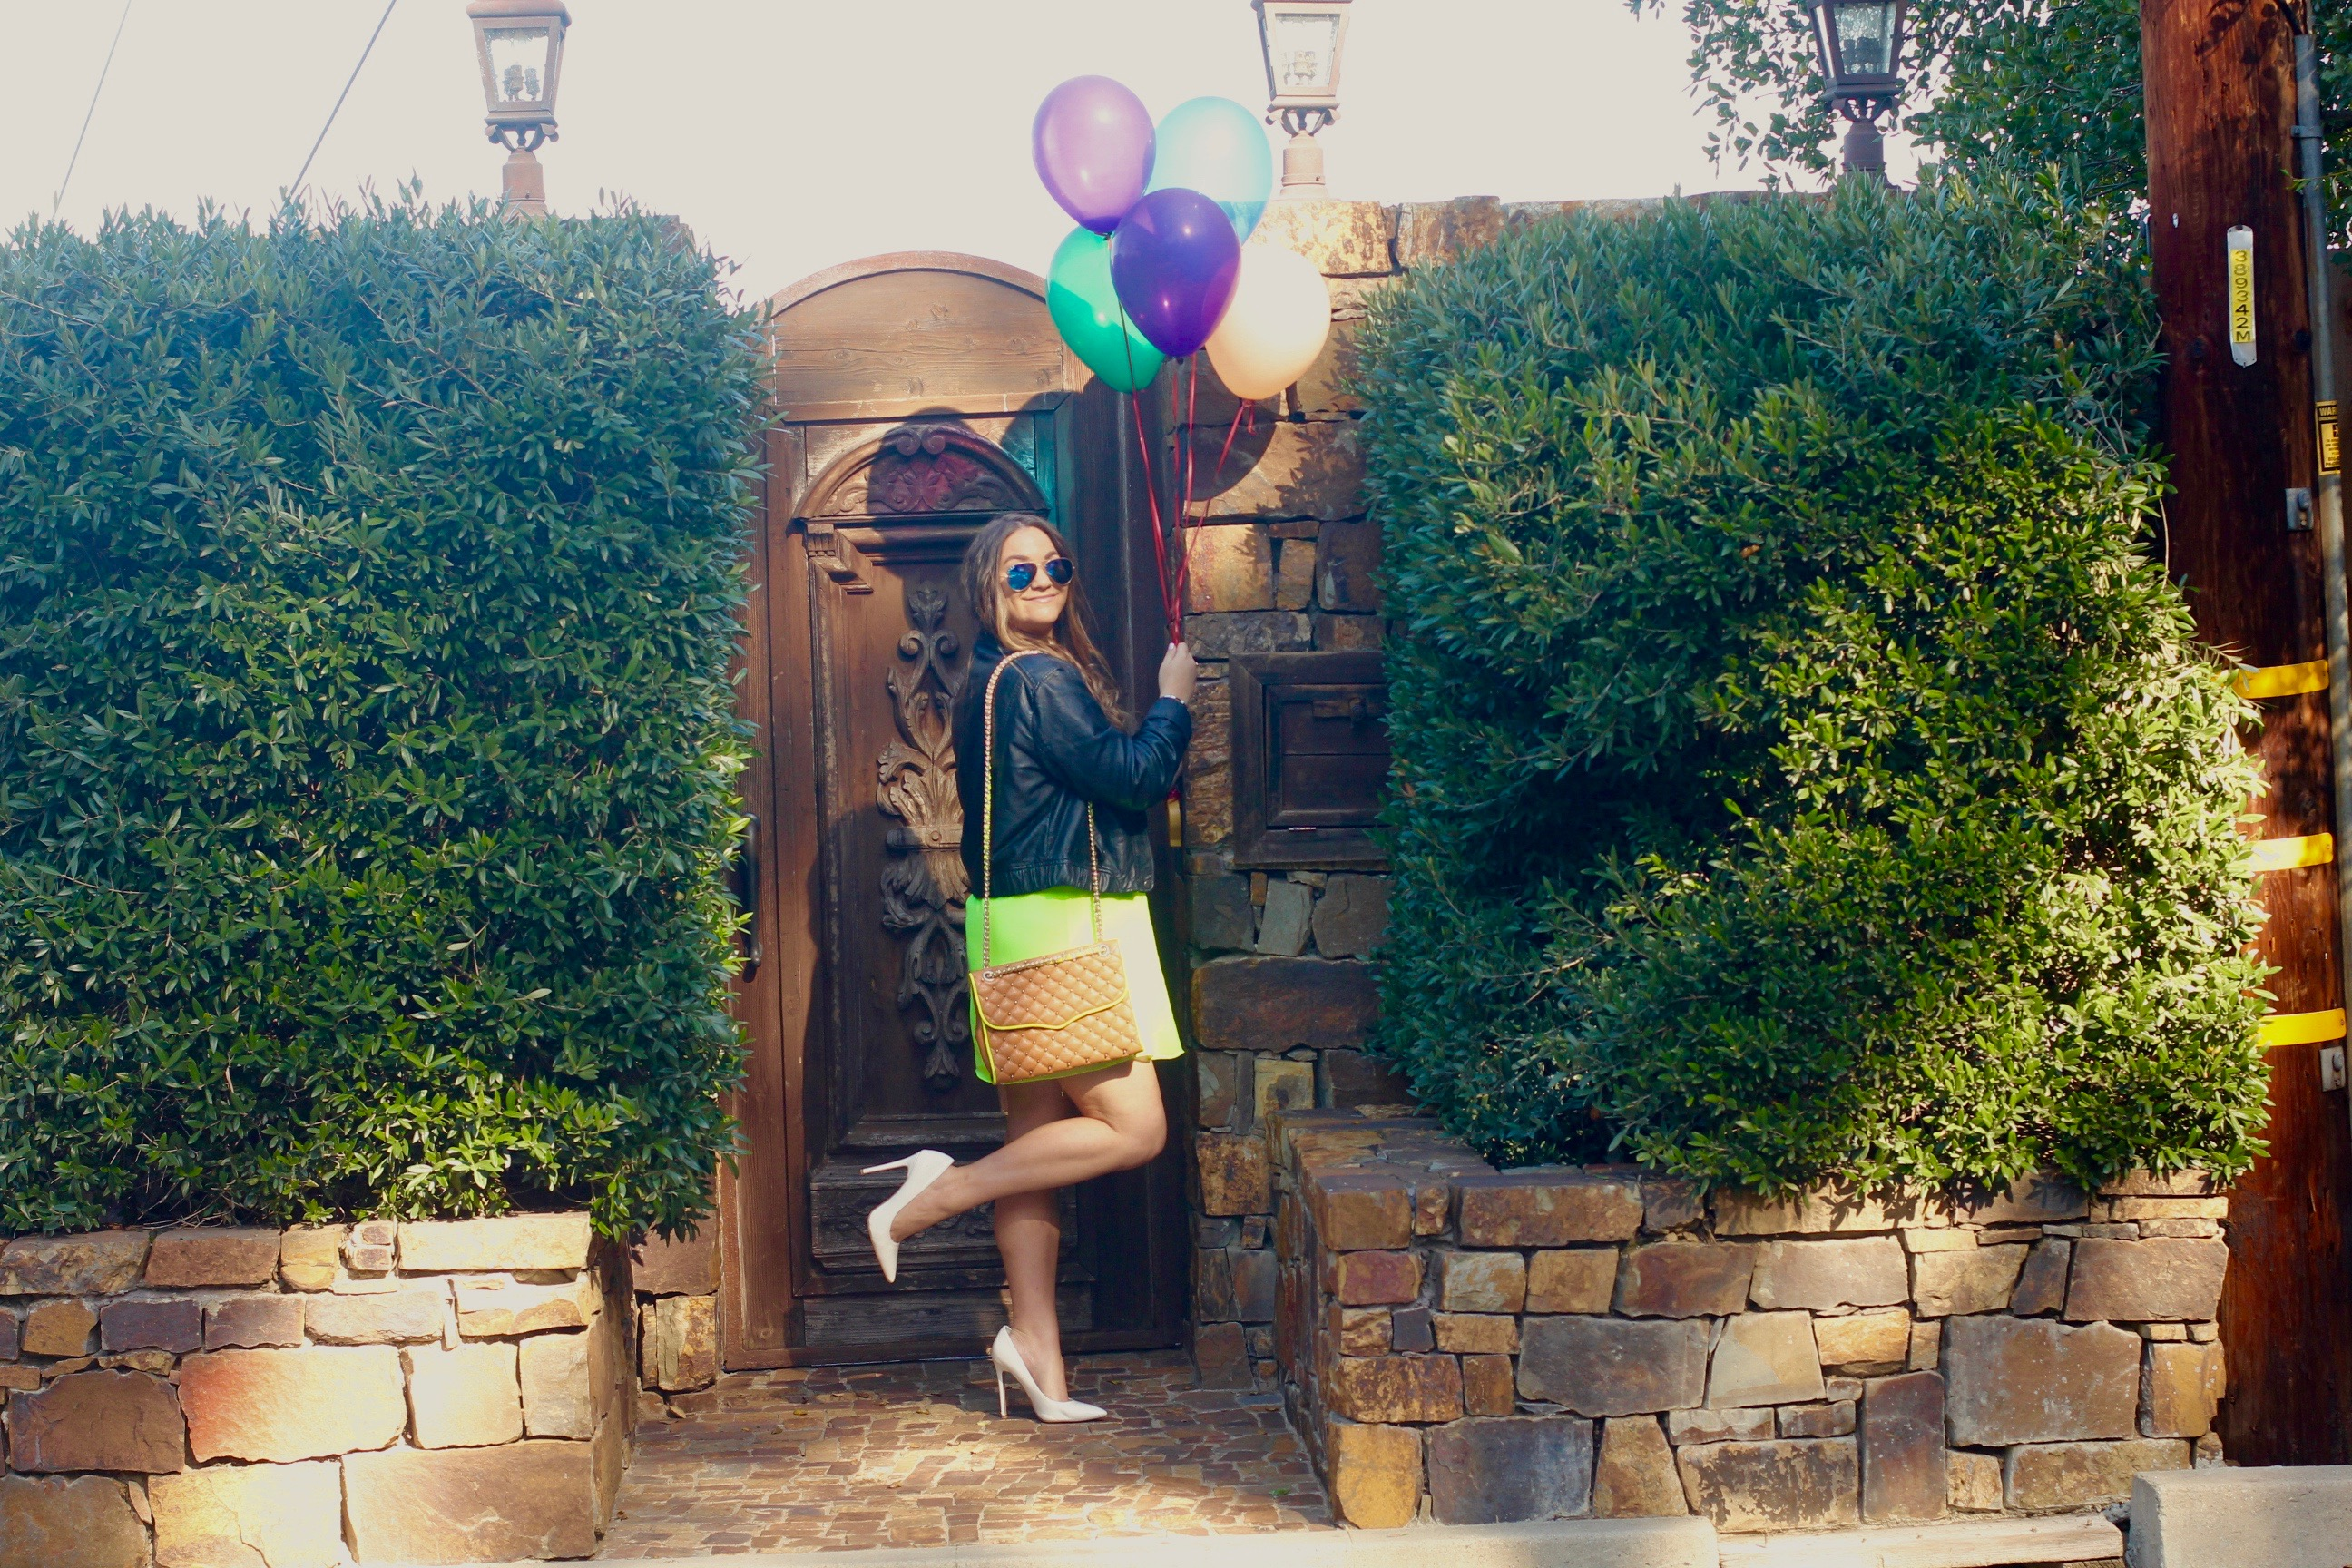 missyonmadison, melissa tierney, fashion blogger, fashion blogger, turning 24, birthday, birthday outfit, la blogger, neon dress, green neon dress, black moto jacket, leather jacket, leather motorcycle jacket, white pumps, white pointed toe pumps, brown quilted cross body bag, rebecca minkoff affair bag, tan quilted cross body bag, ray bans, blue mirrored ray bans, gold cuff bracelet, gold lariat necklace, universal city overlook, balloons, birthday girl, brunette hair,